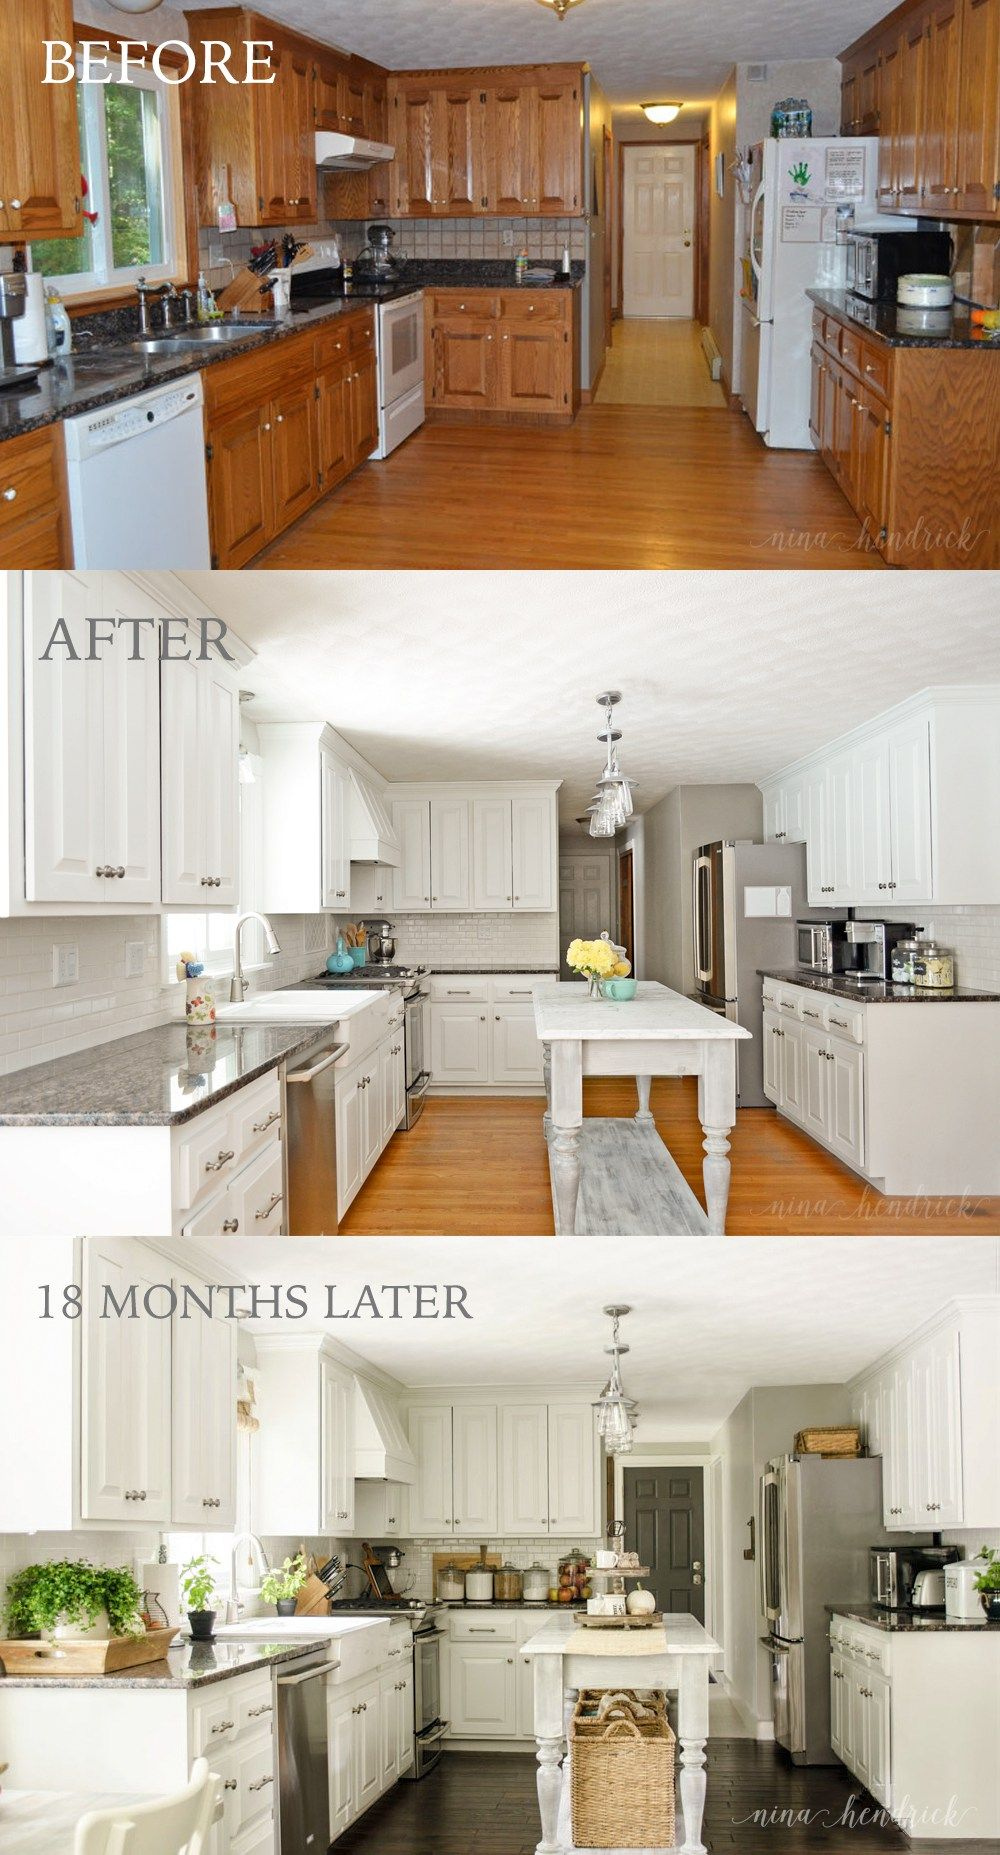 How To Paint Oak Cabinets And Hide The Grain Kitchen Cabinets Makeover Kitchen Inspirations Kitchen Renovation